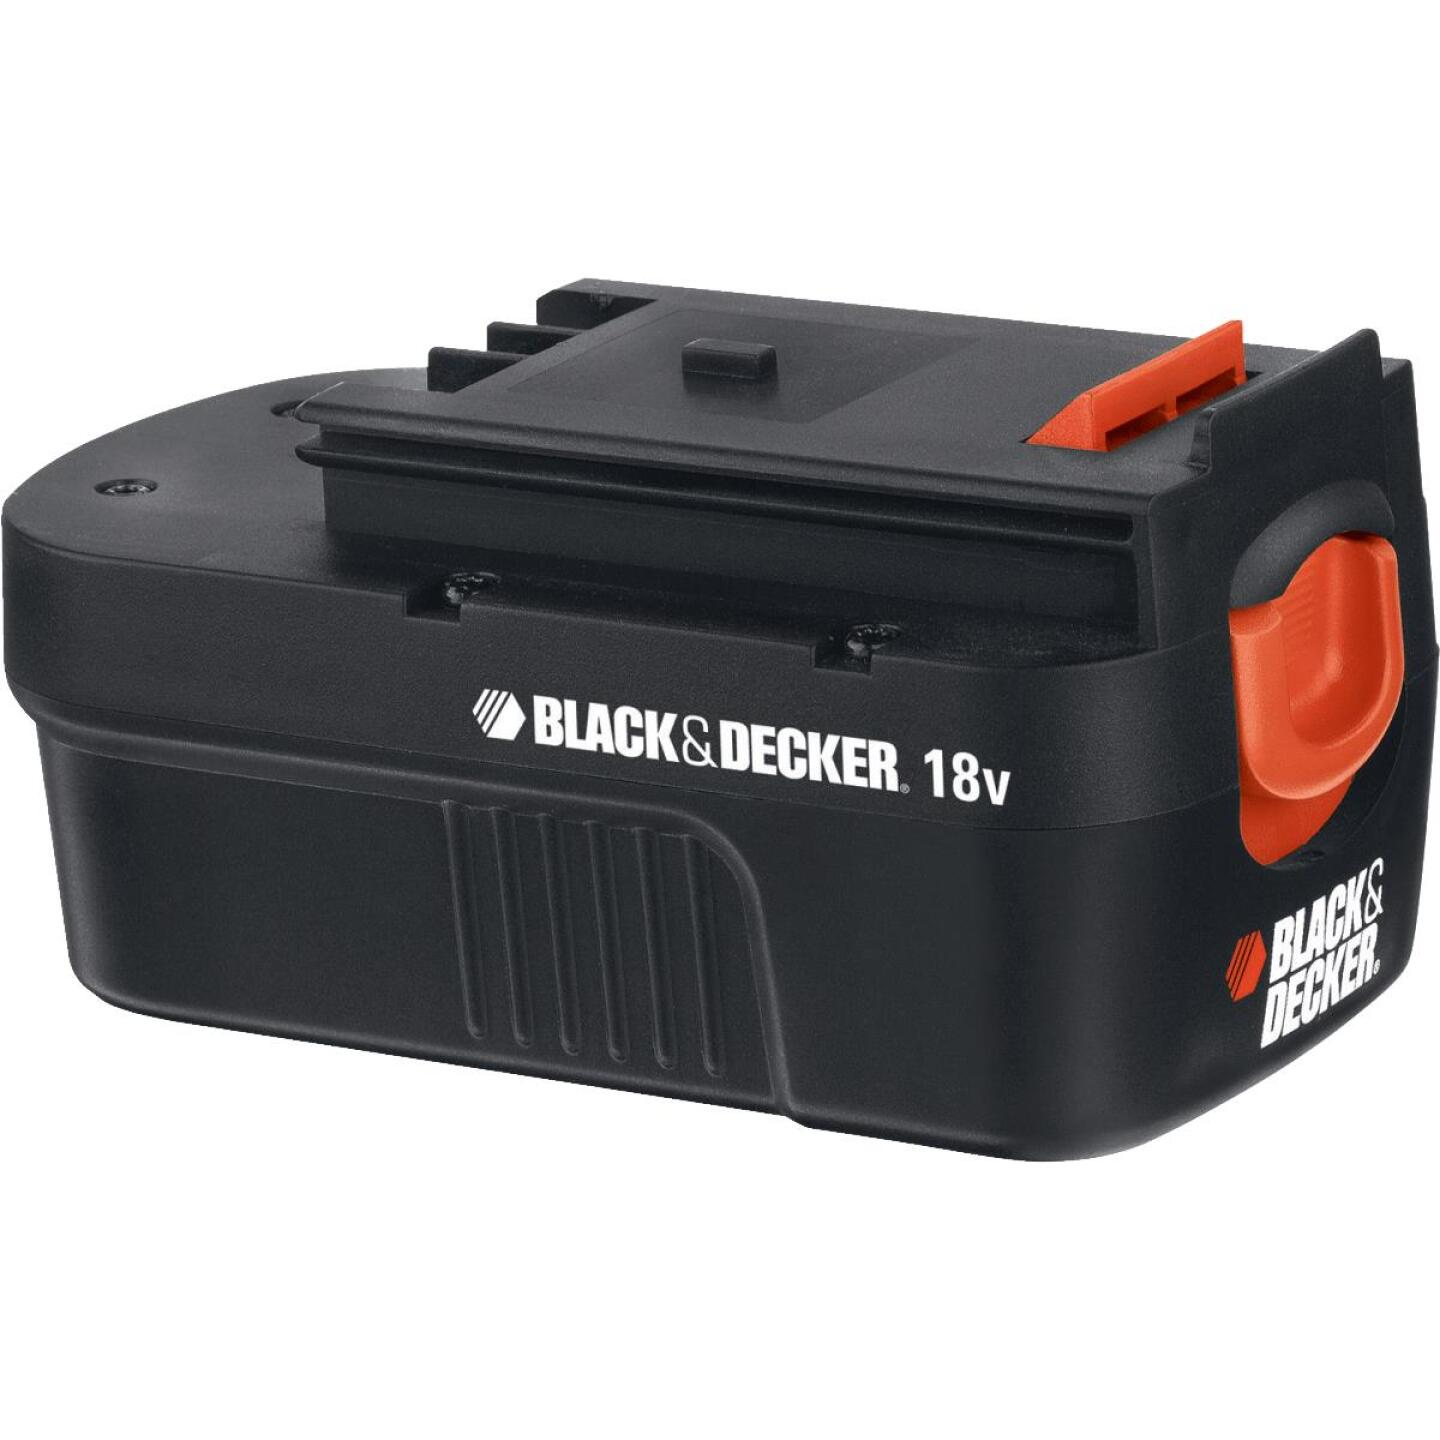 Black & Decker 18 Volt Nickel-Cadmium 1.5 Ah Spring-Loaded Slide Tool Battery Image 1